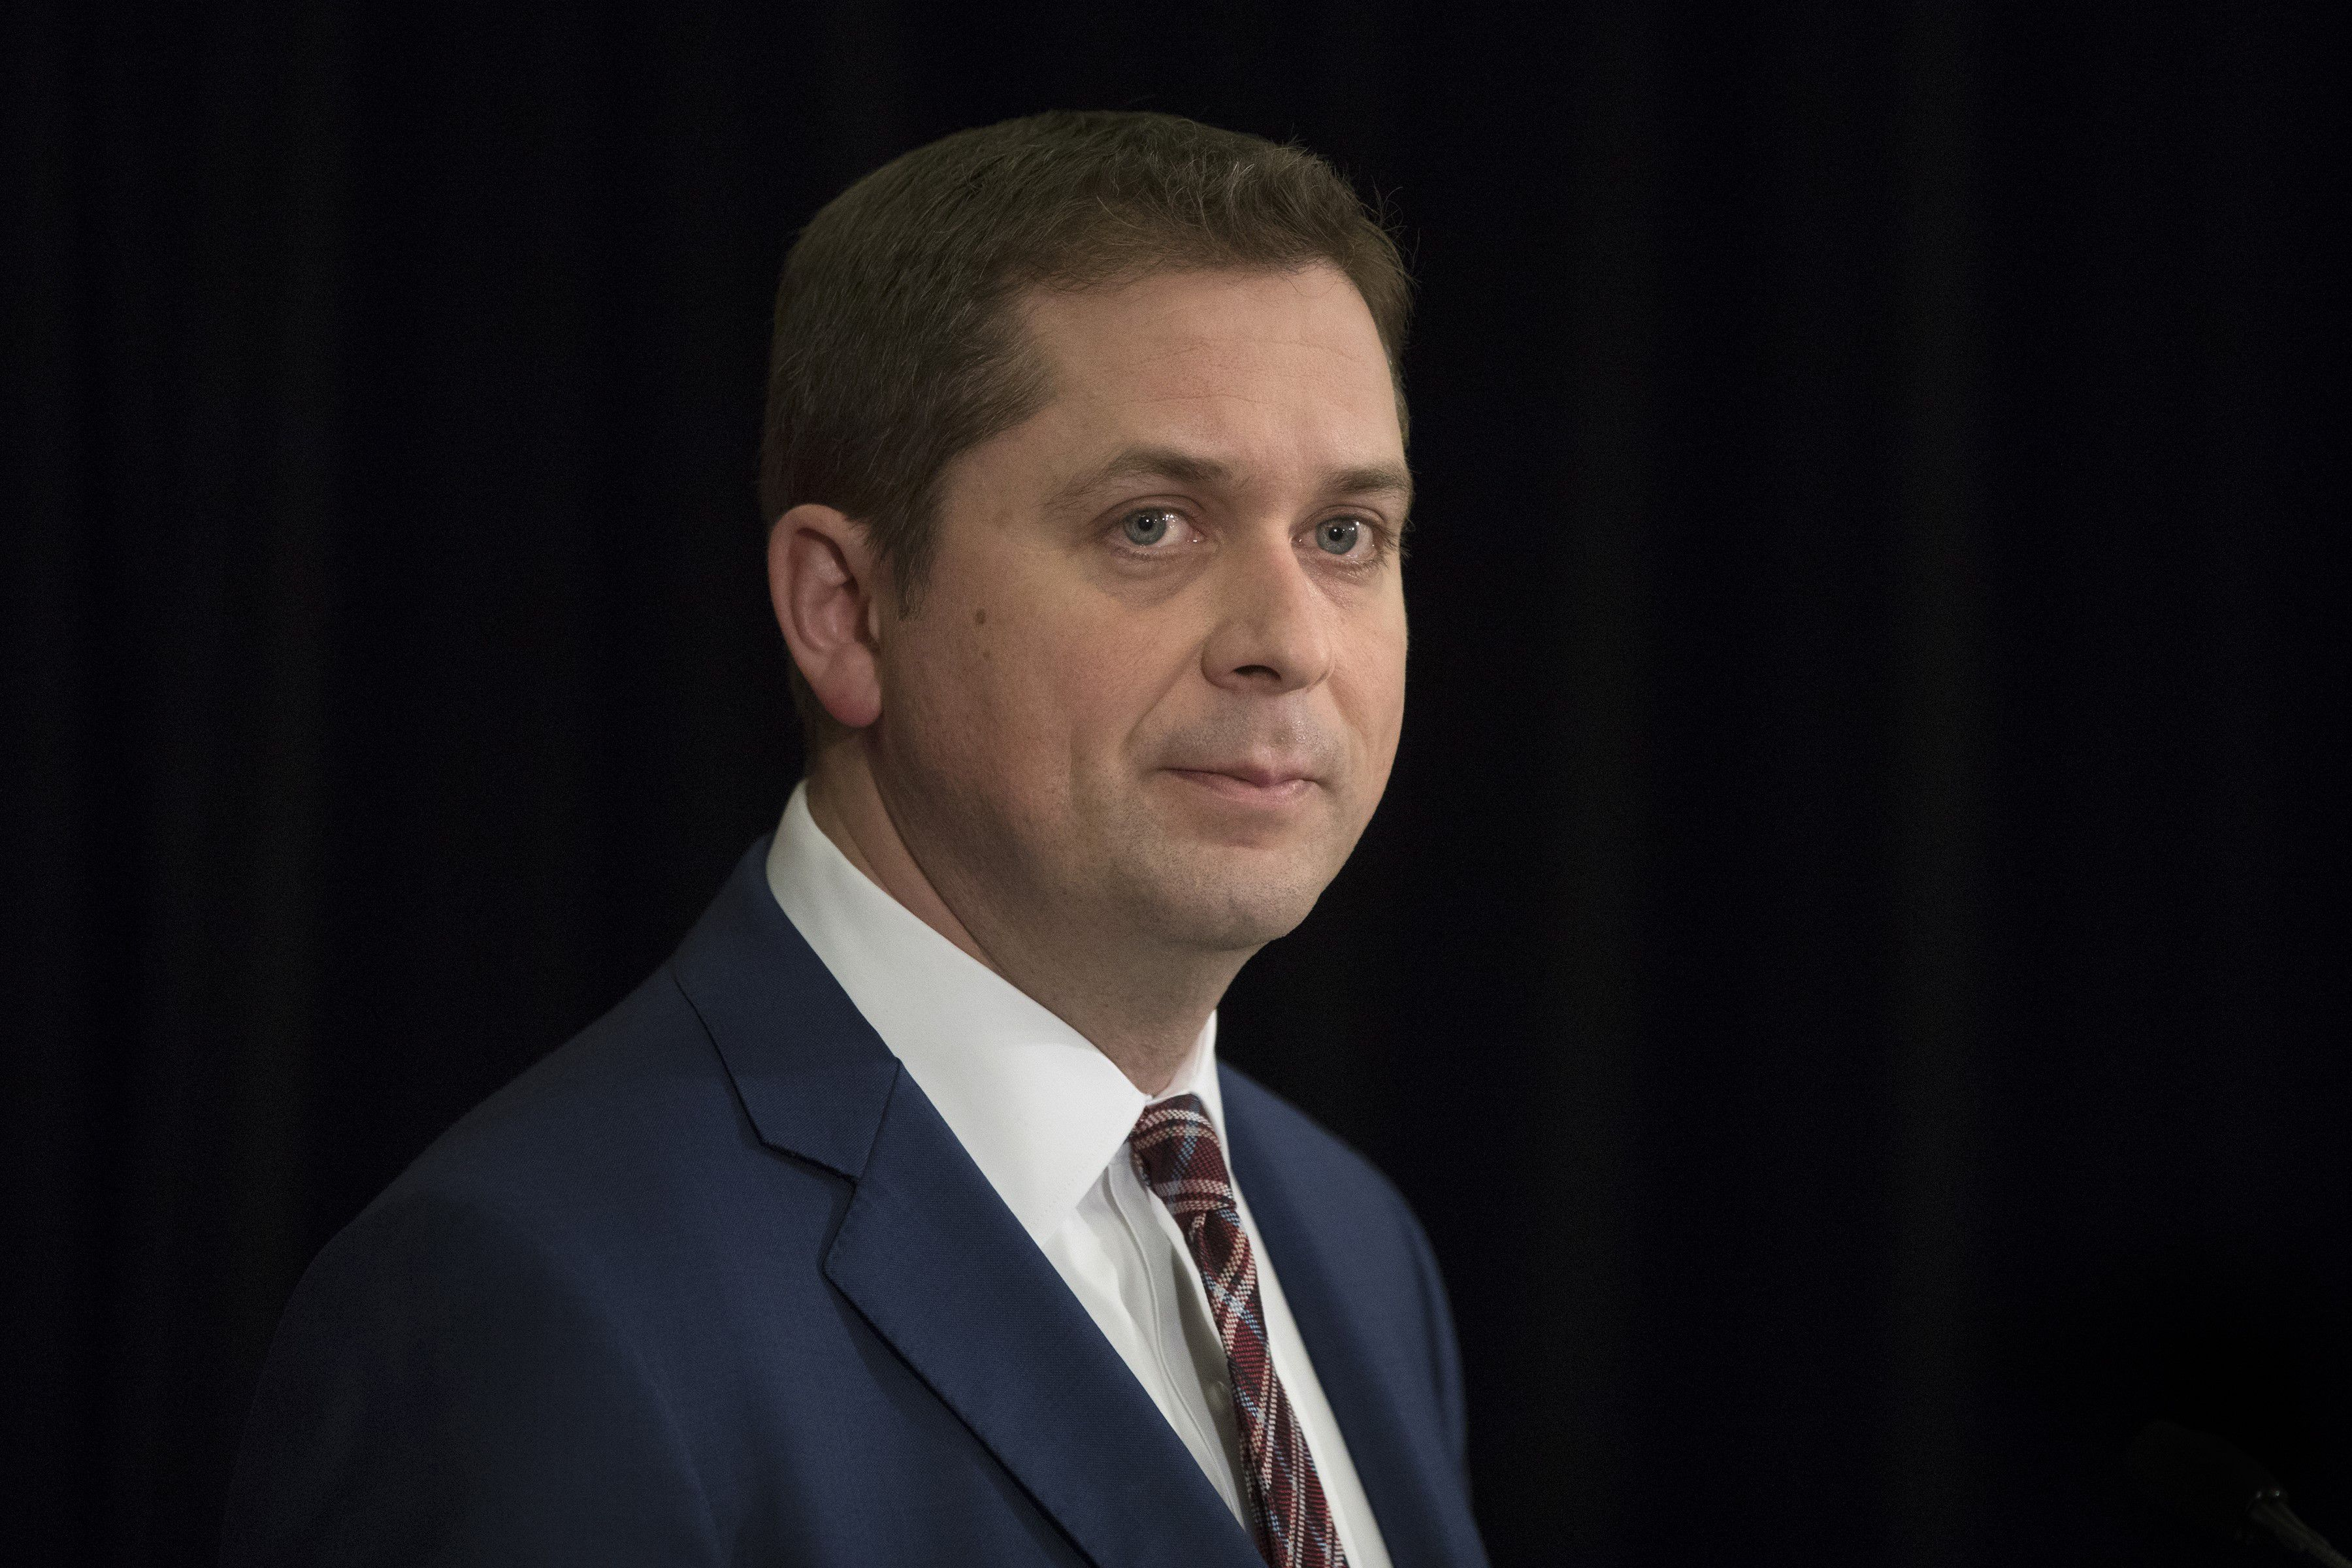 After New Zealand, Tory cancels event with anti-Muslim speaker; Scheer ripped by Harper aide for weak response